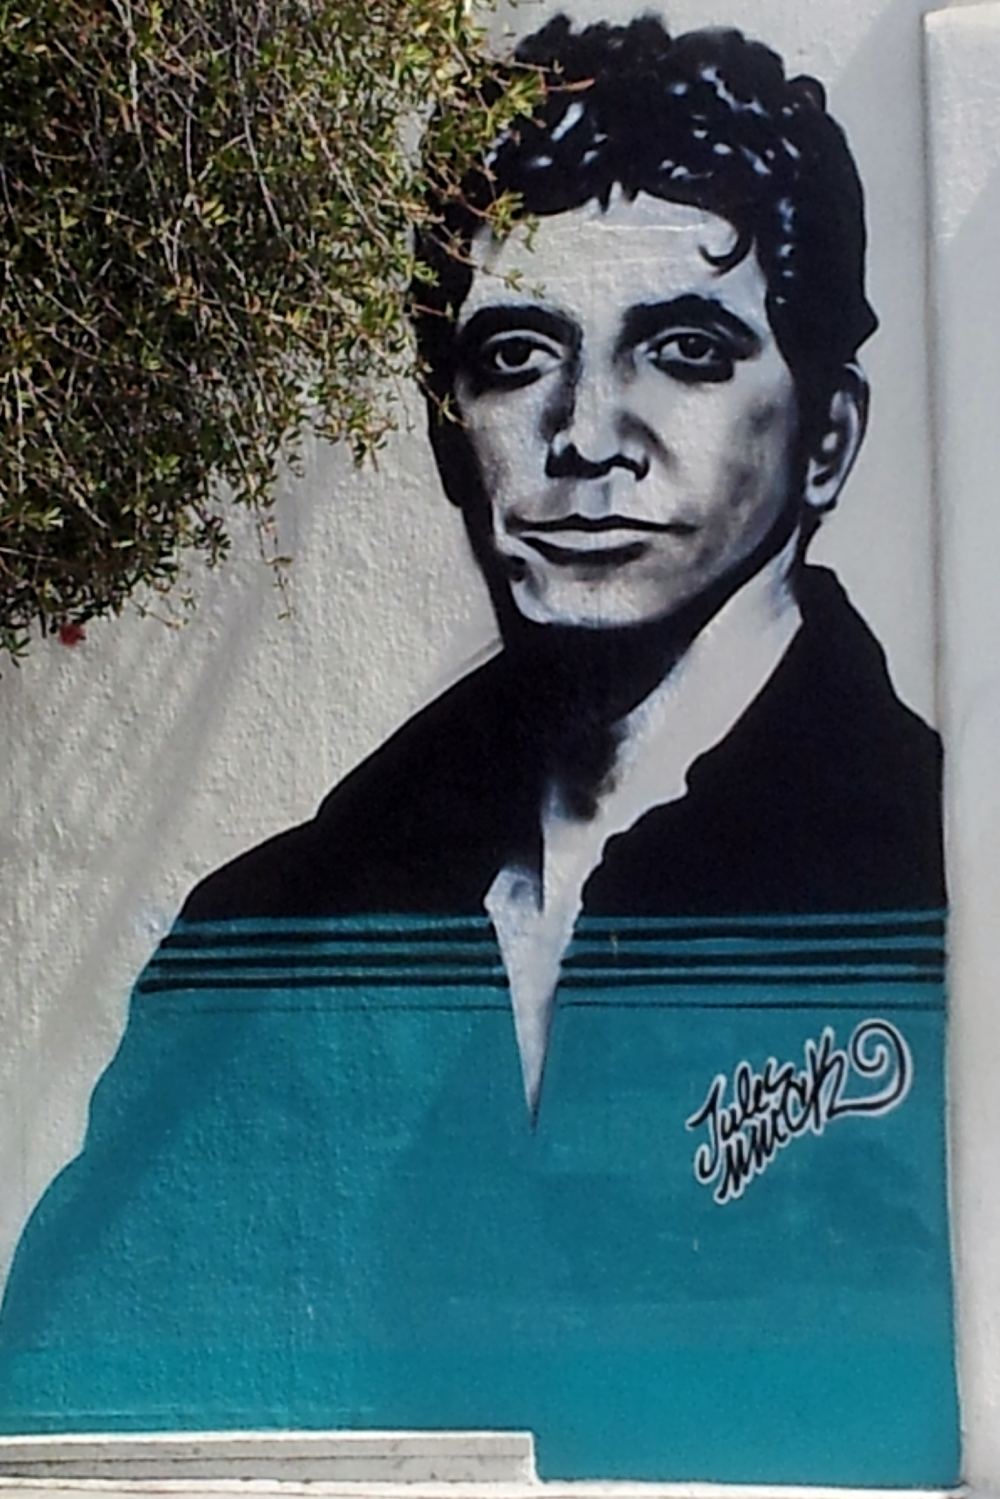 mural of Lou Reed